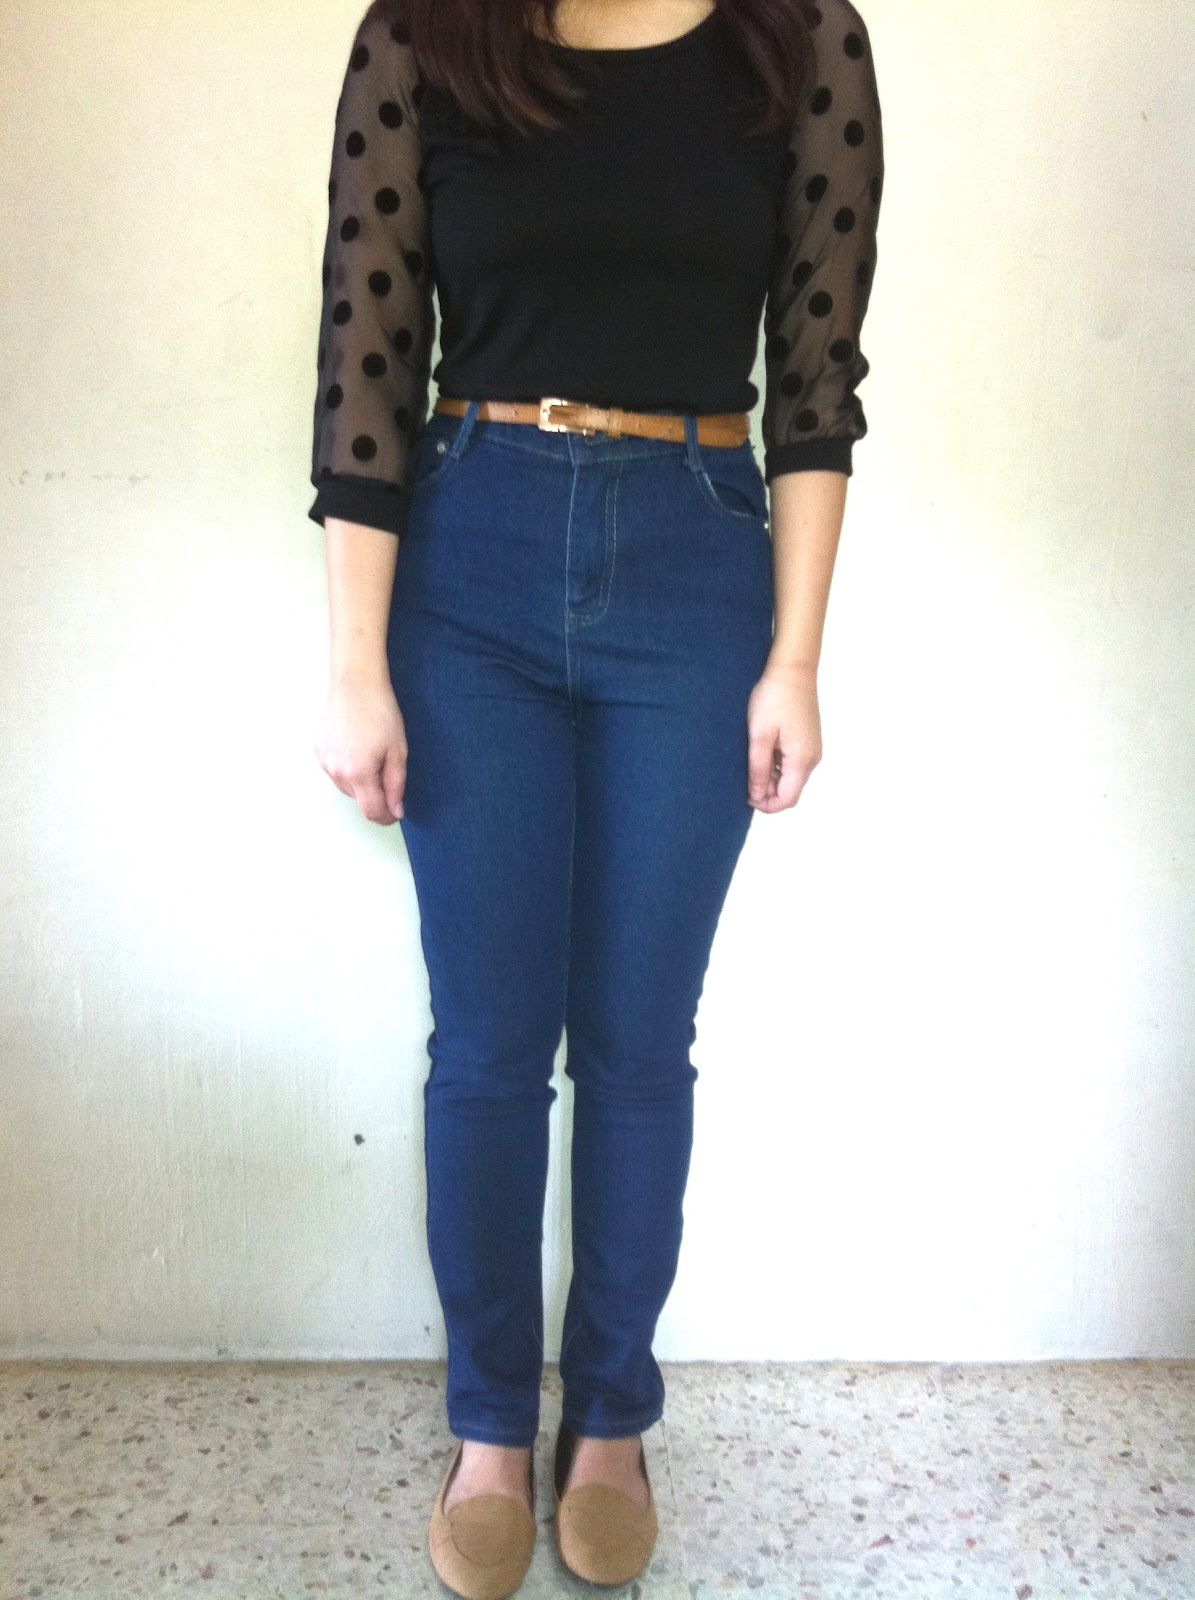 Free shipping & returns on high-waisted jeans for women at dnxvvyut.ml Shop for high waisted jeans by leg style, wash, waist size, and more from top brands. Free shipping and returns.